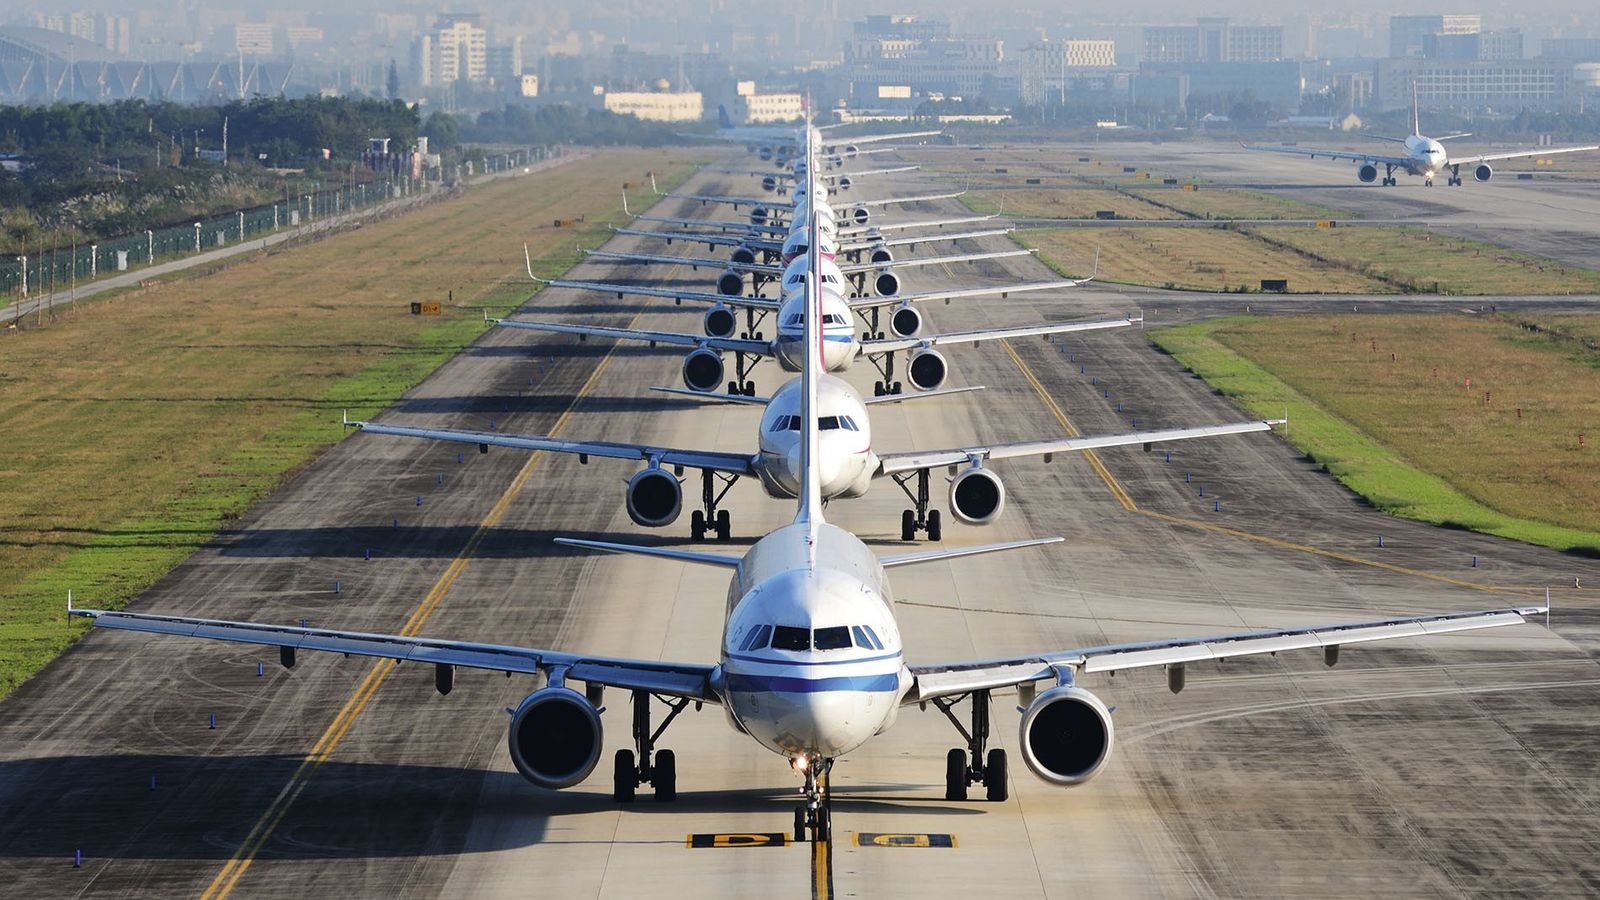 A queue of airplanes on a runway